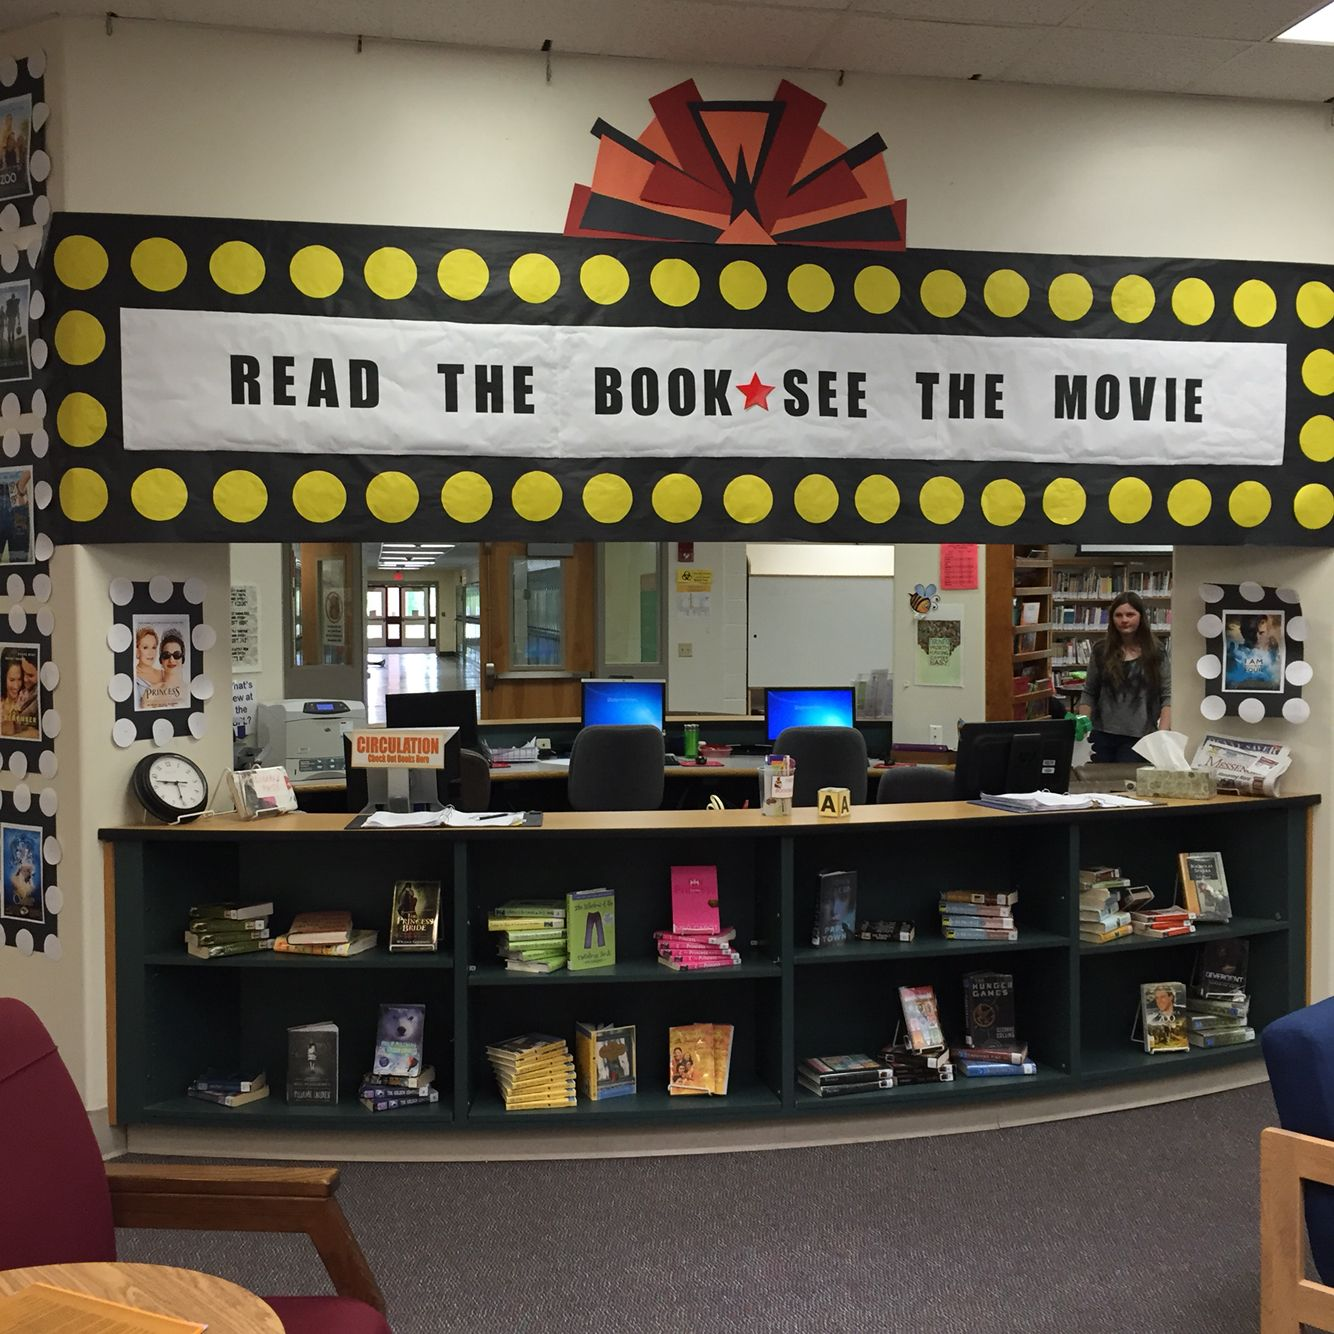 May display - read the book - see the movie - cinema marquee